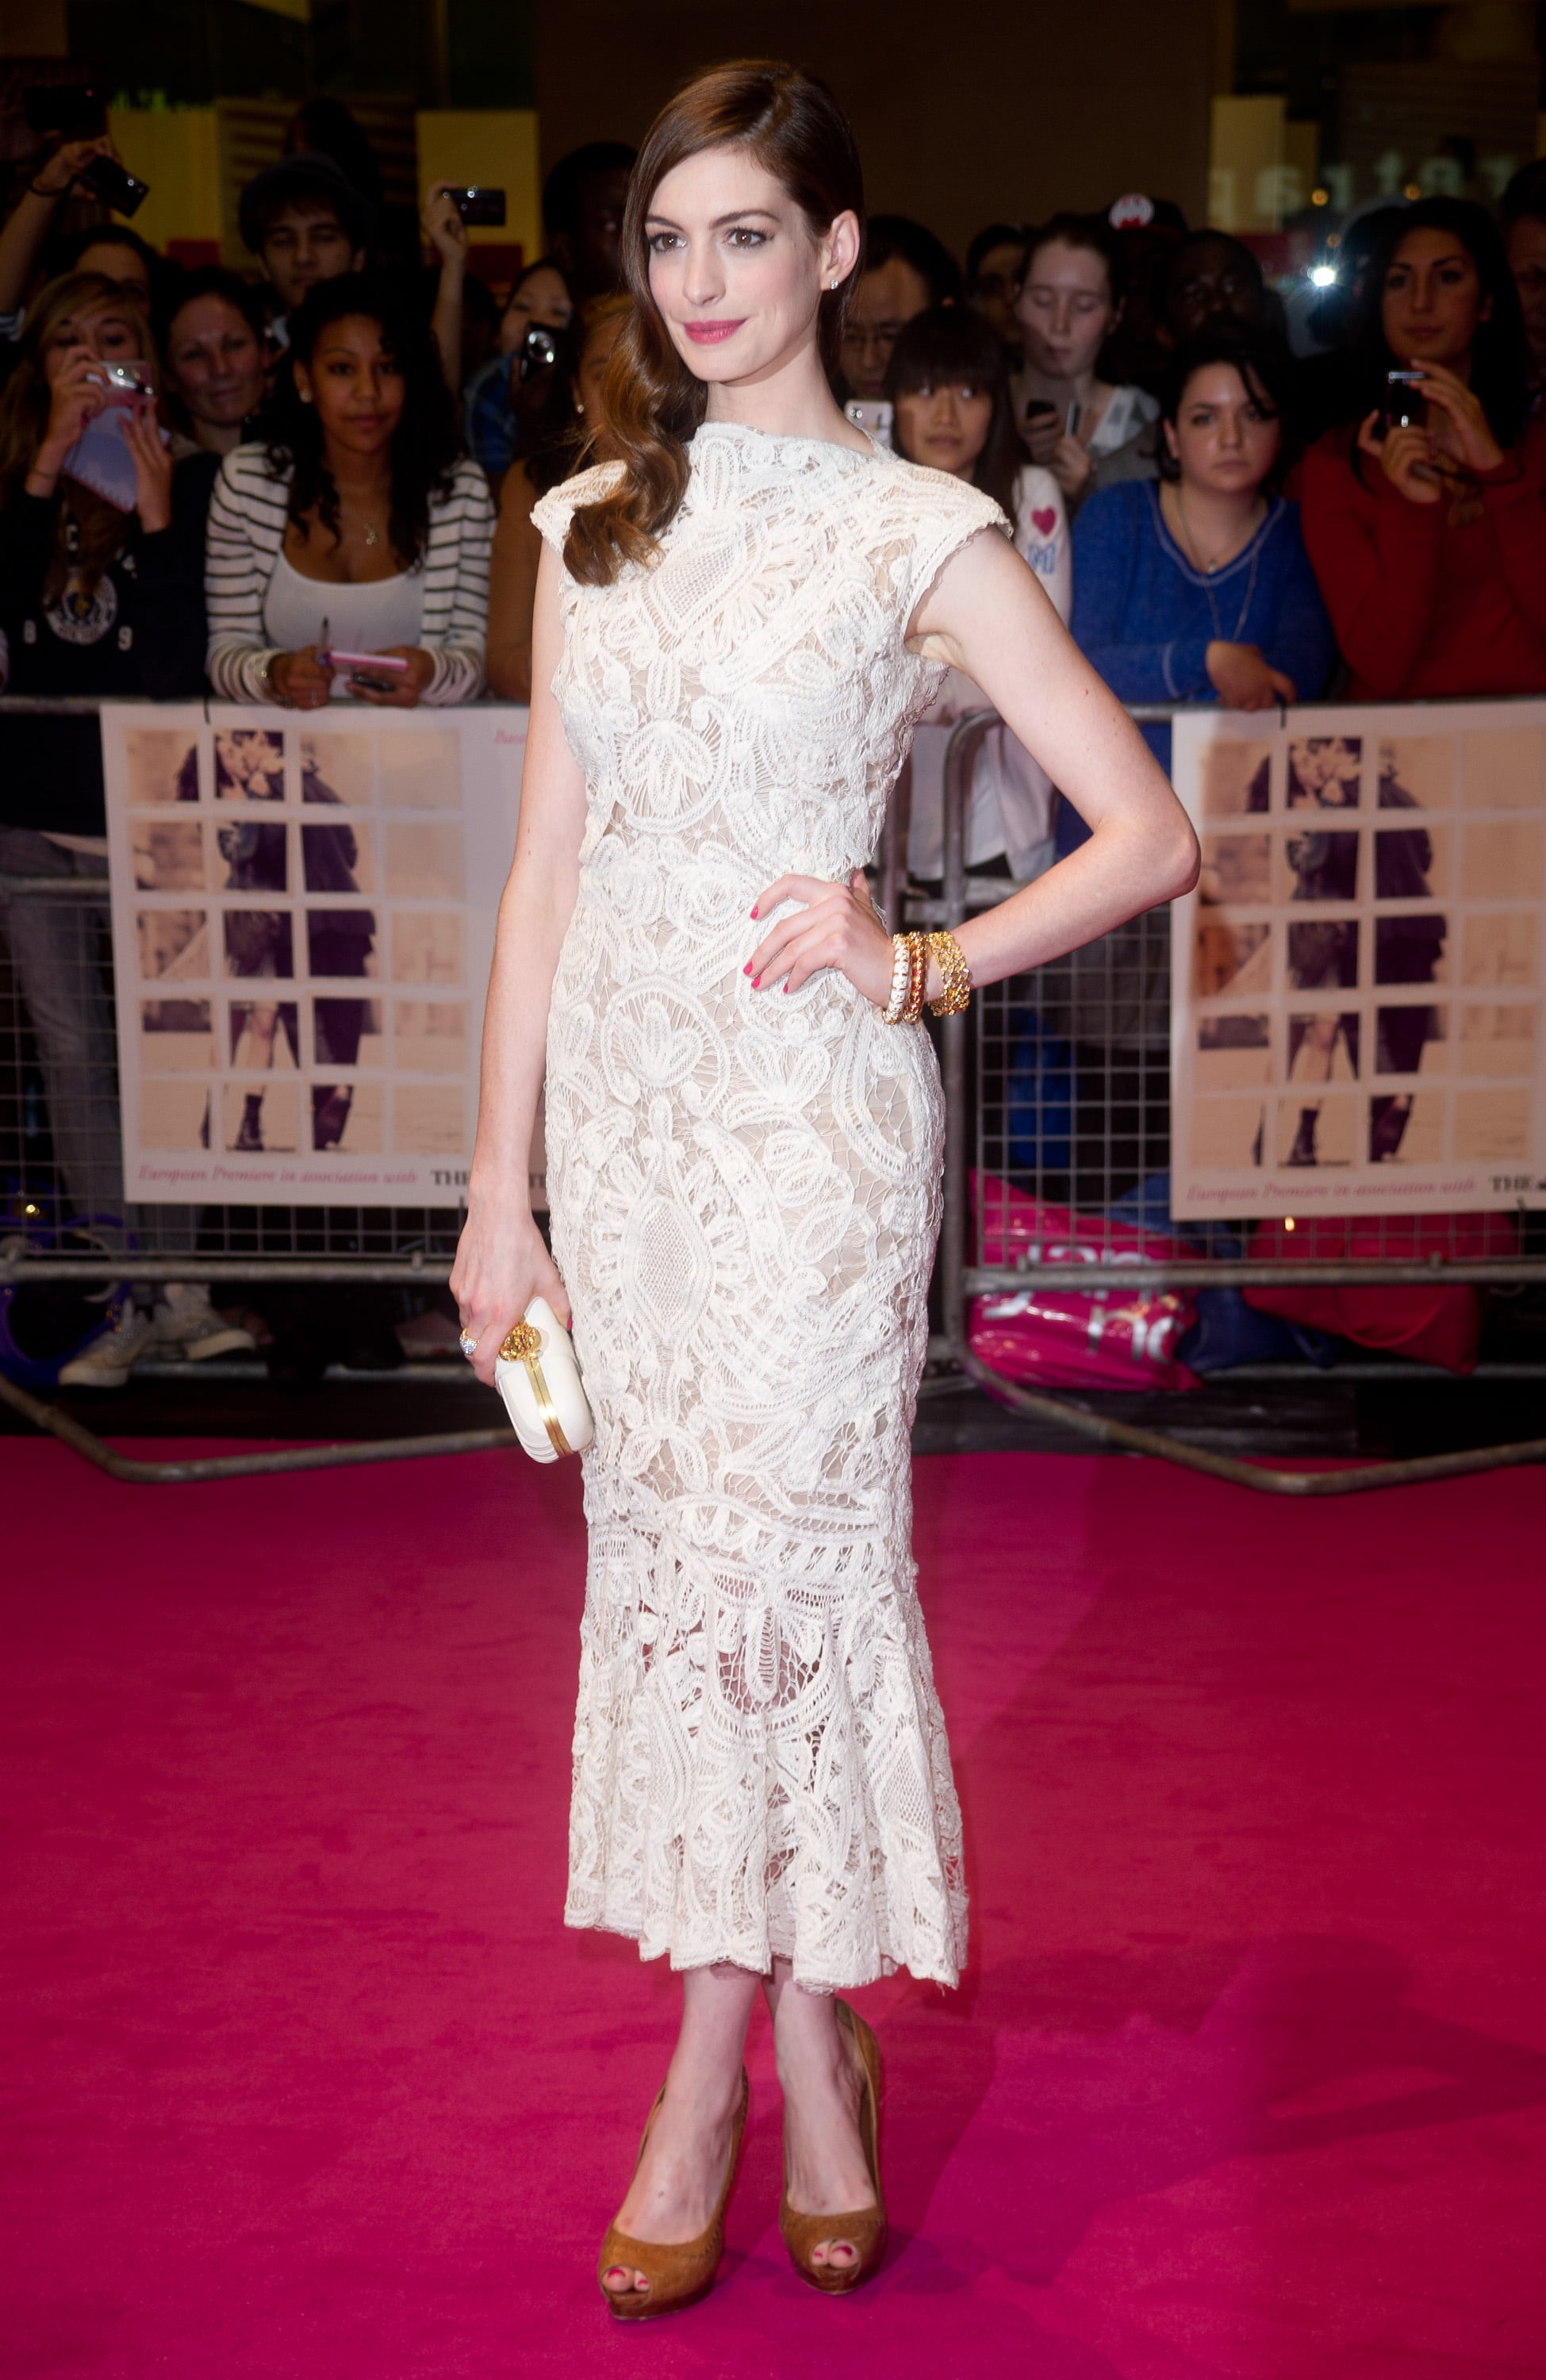 Anne Hathaway wore a high-neck dress and showed a flash of ankle.